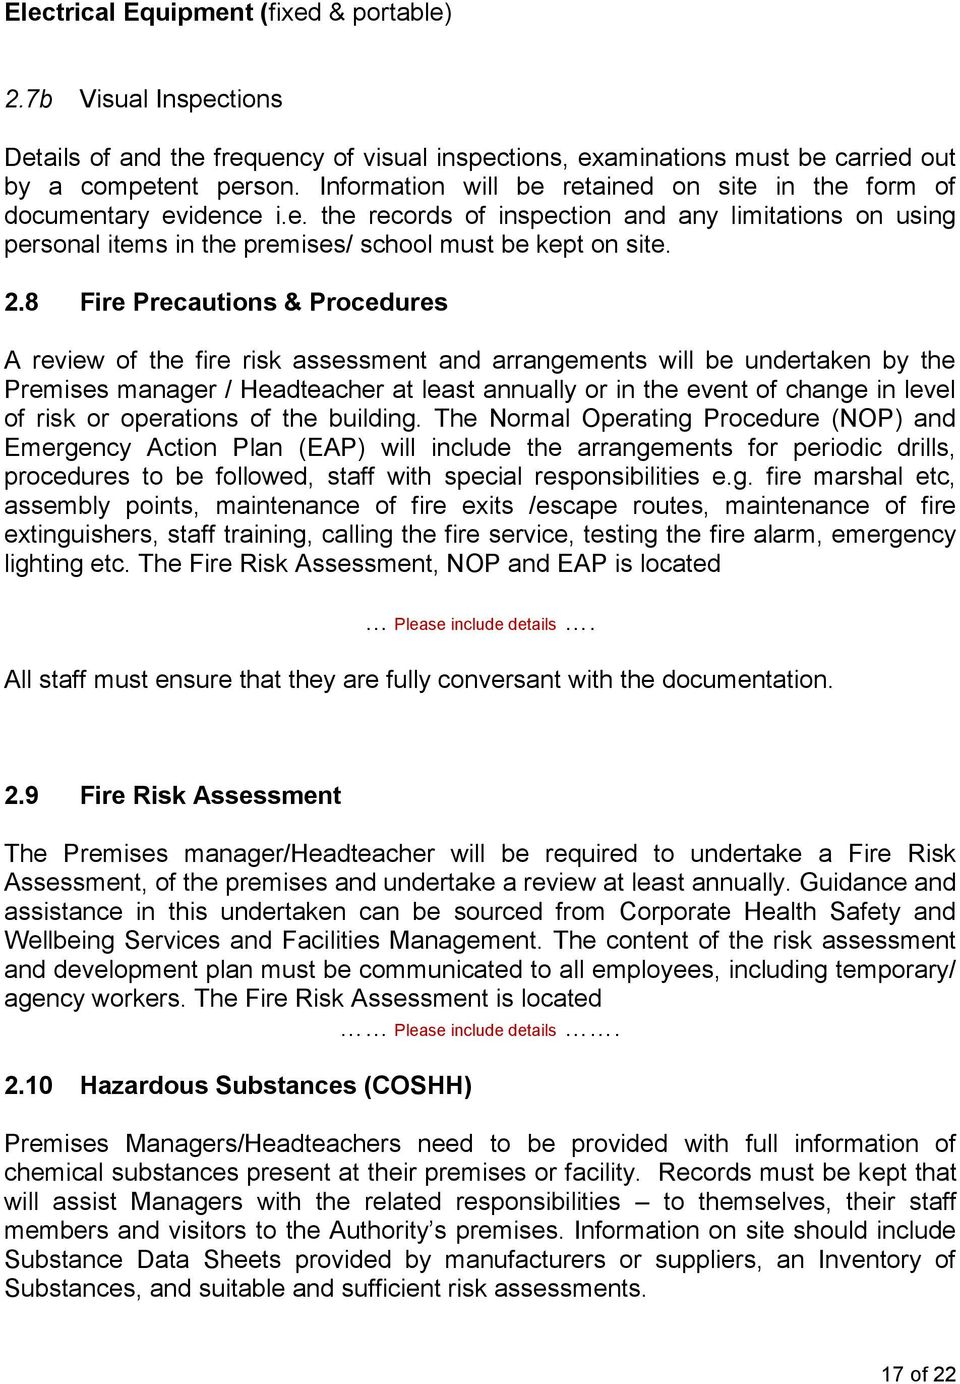 8 Fire Precautions & Procedures A review of the fire risk assessment and arrangements will be undertaken by the Premises manager / Headteacher at least annually or in the event of change in level of